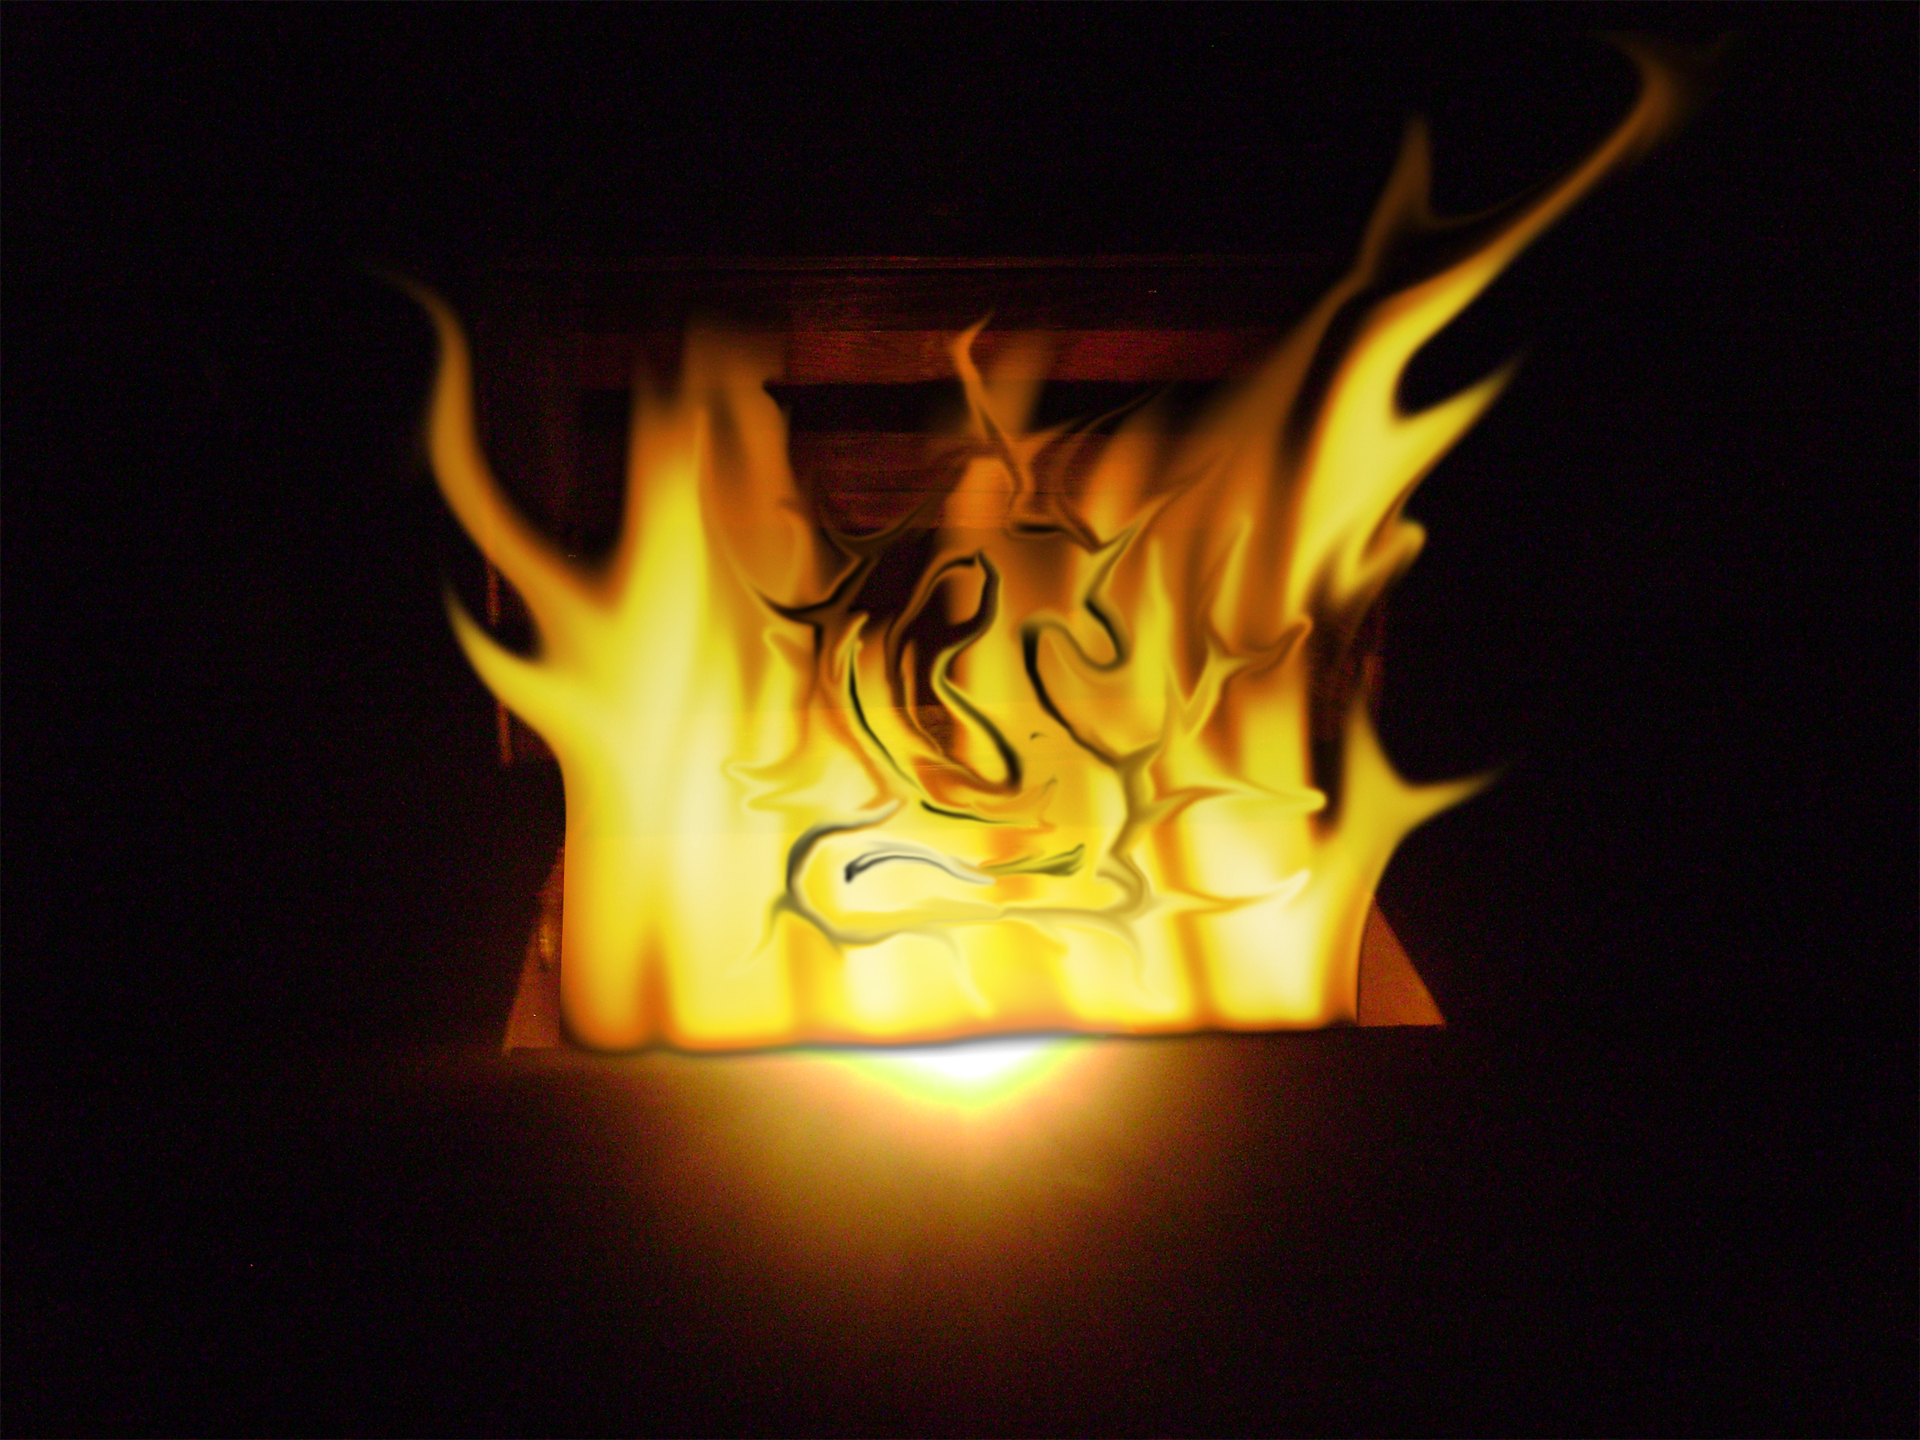 Gift of Fire, Abstract, Black, Fire, Flames, HQ Photo